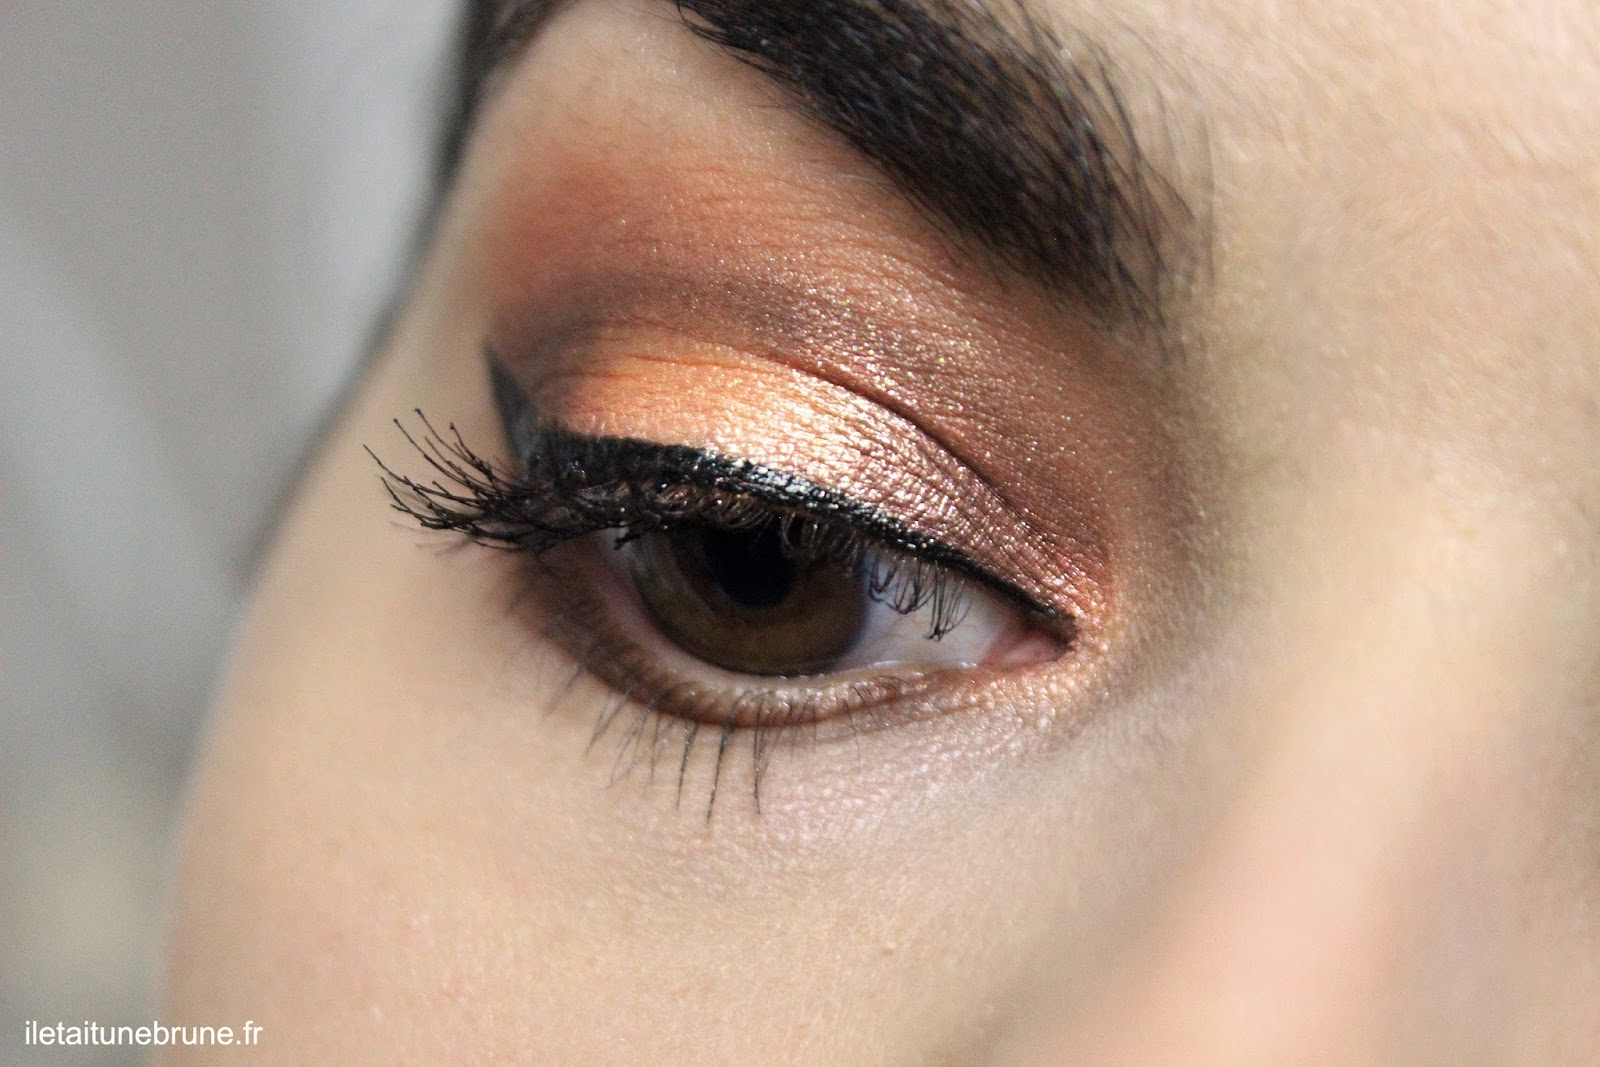 tangerine & rust makeup